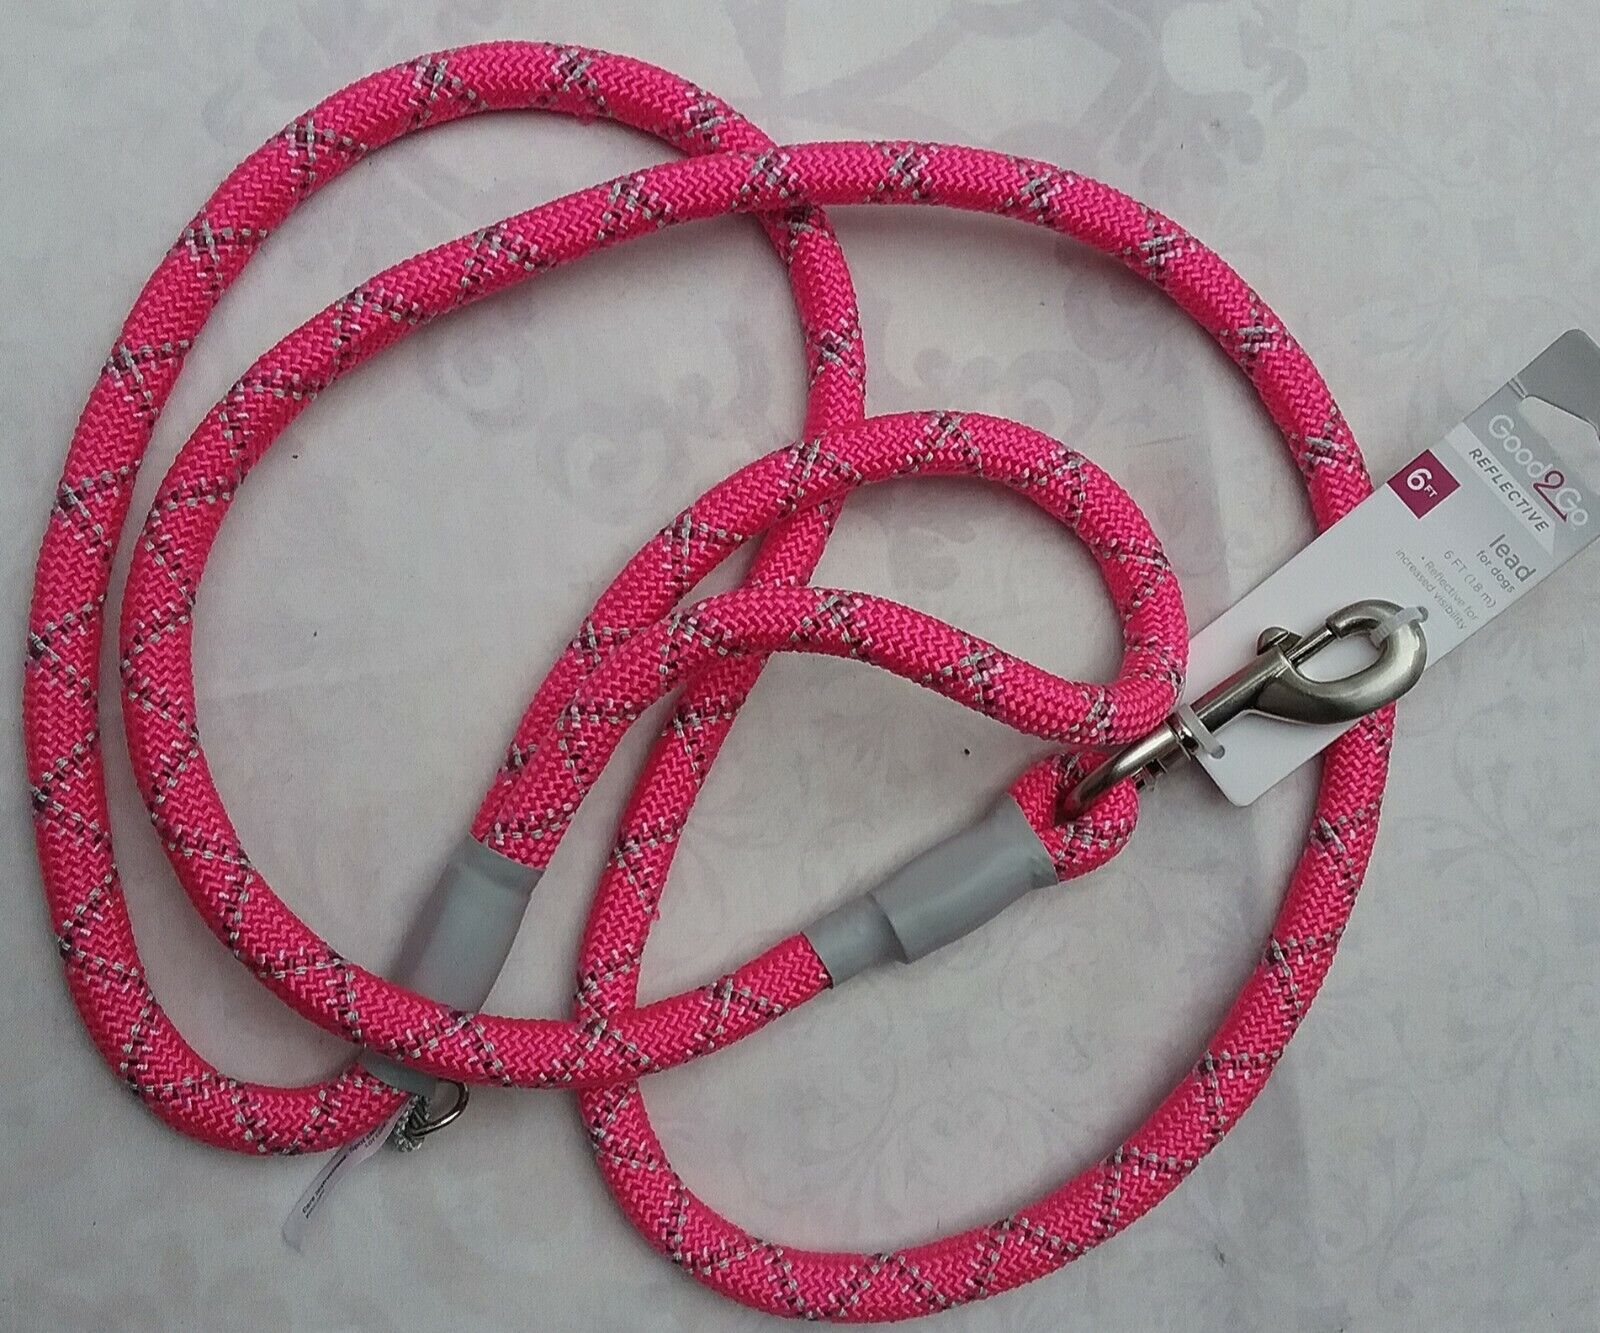 NEW GOOD TO GO STRONG REFLECTIVE ROPE LEASH, FLUORESCENT PINK, 6 LONG - $13.50